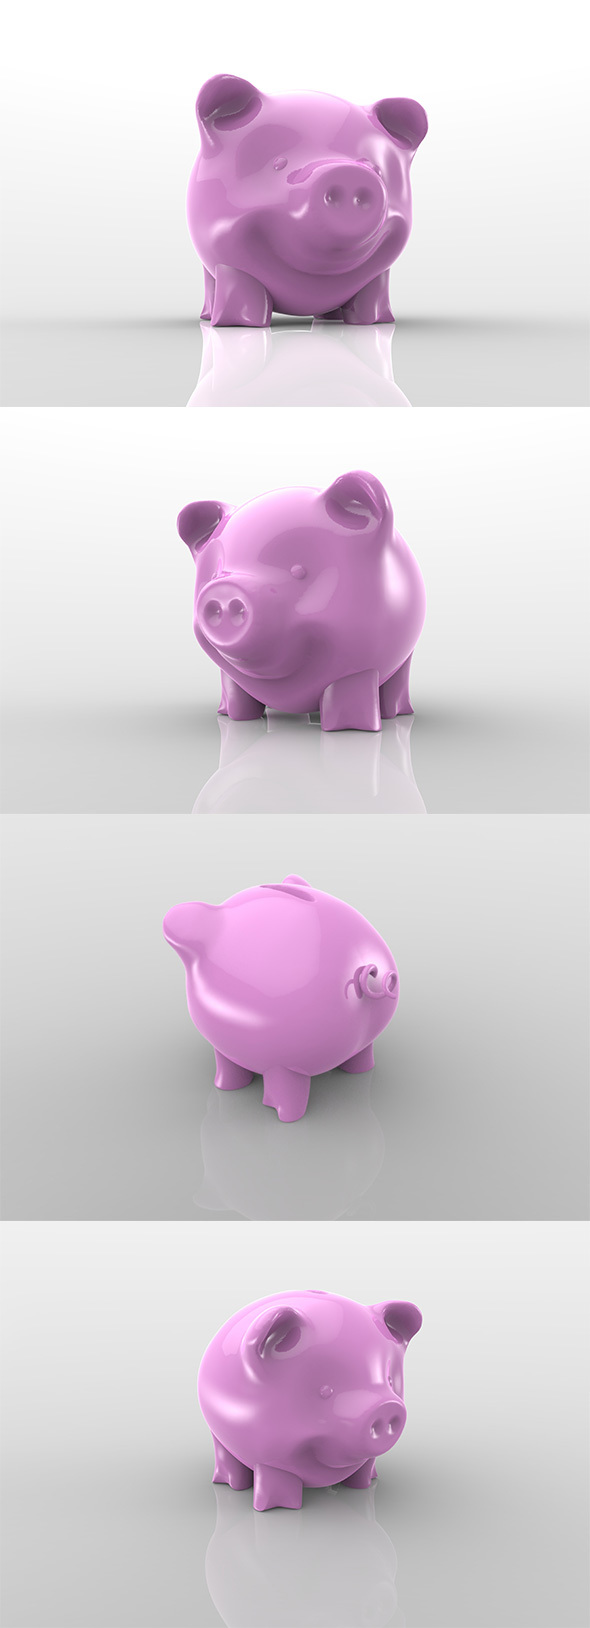 Piggy Bank - 3DOcean Item for Sale